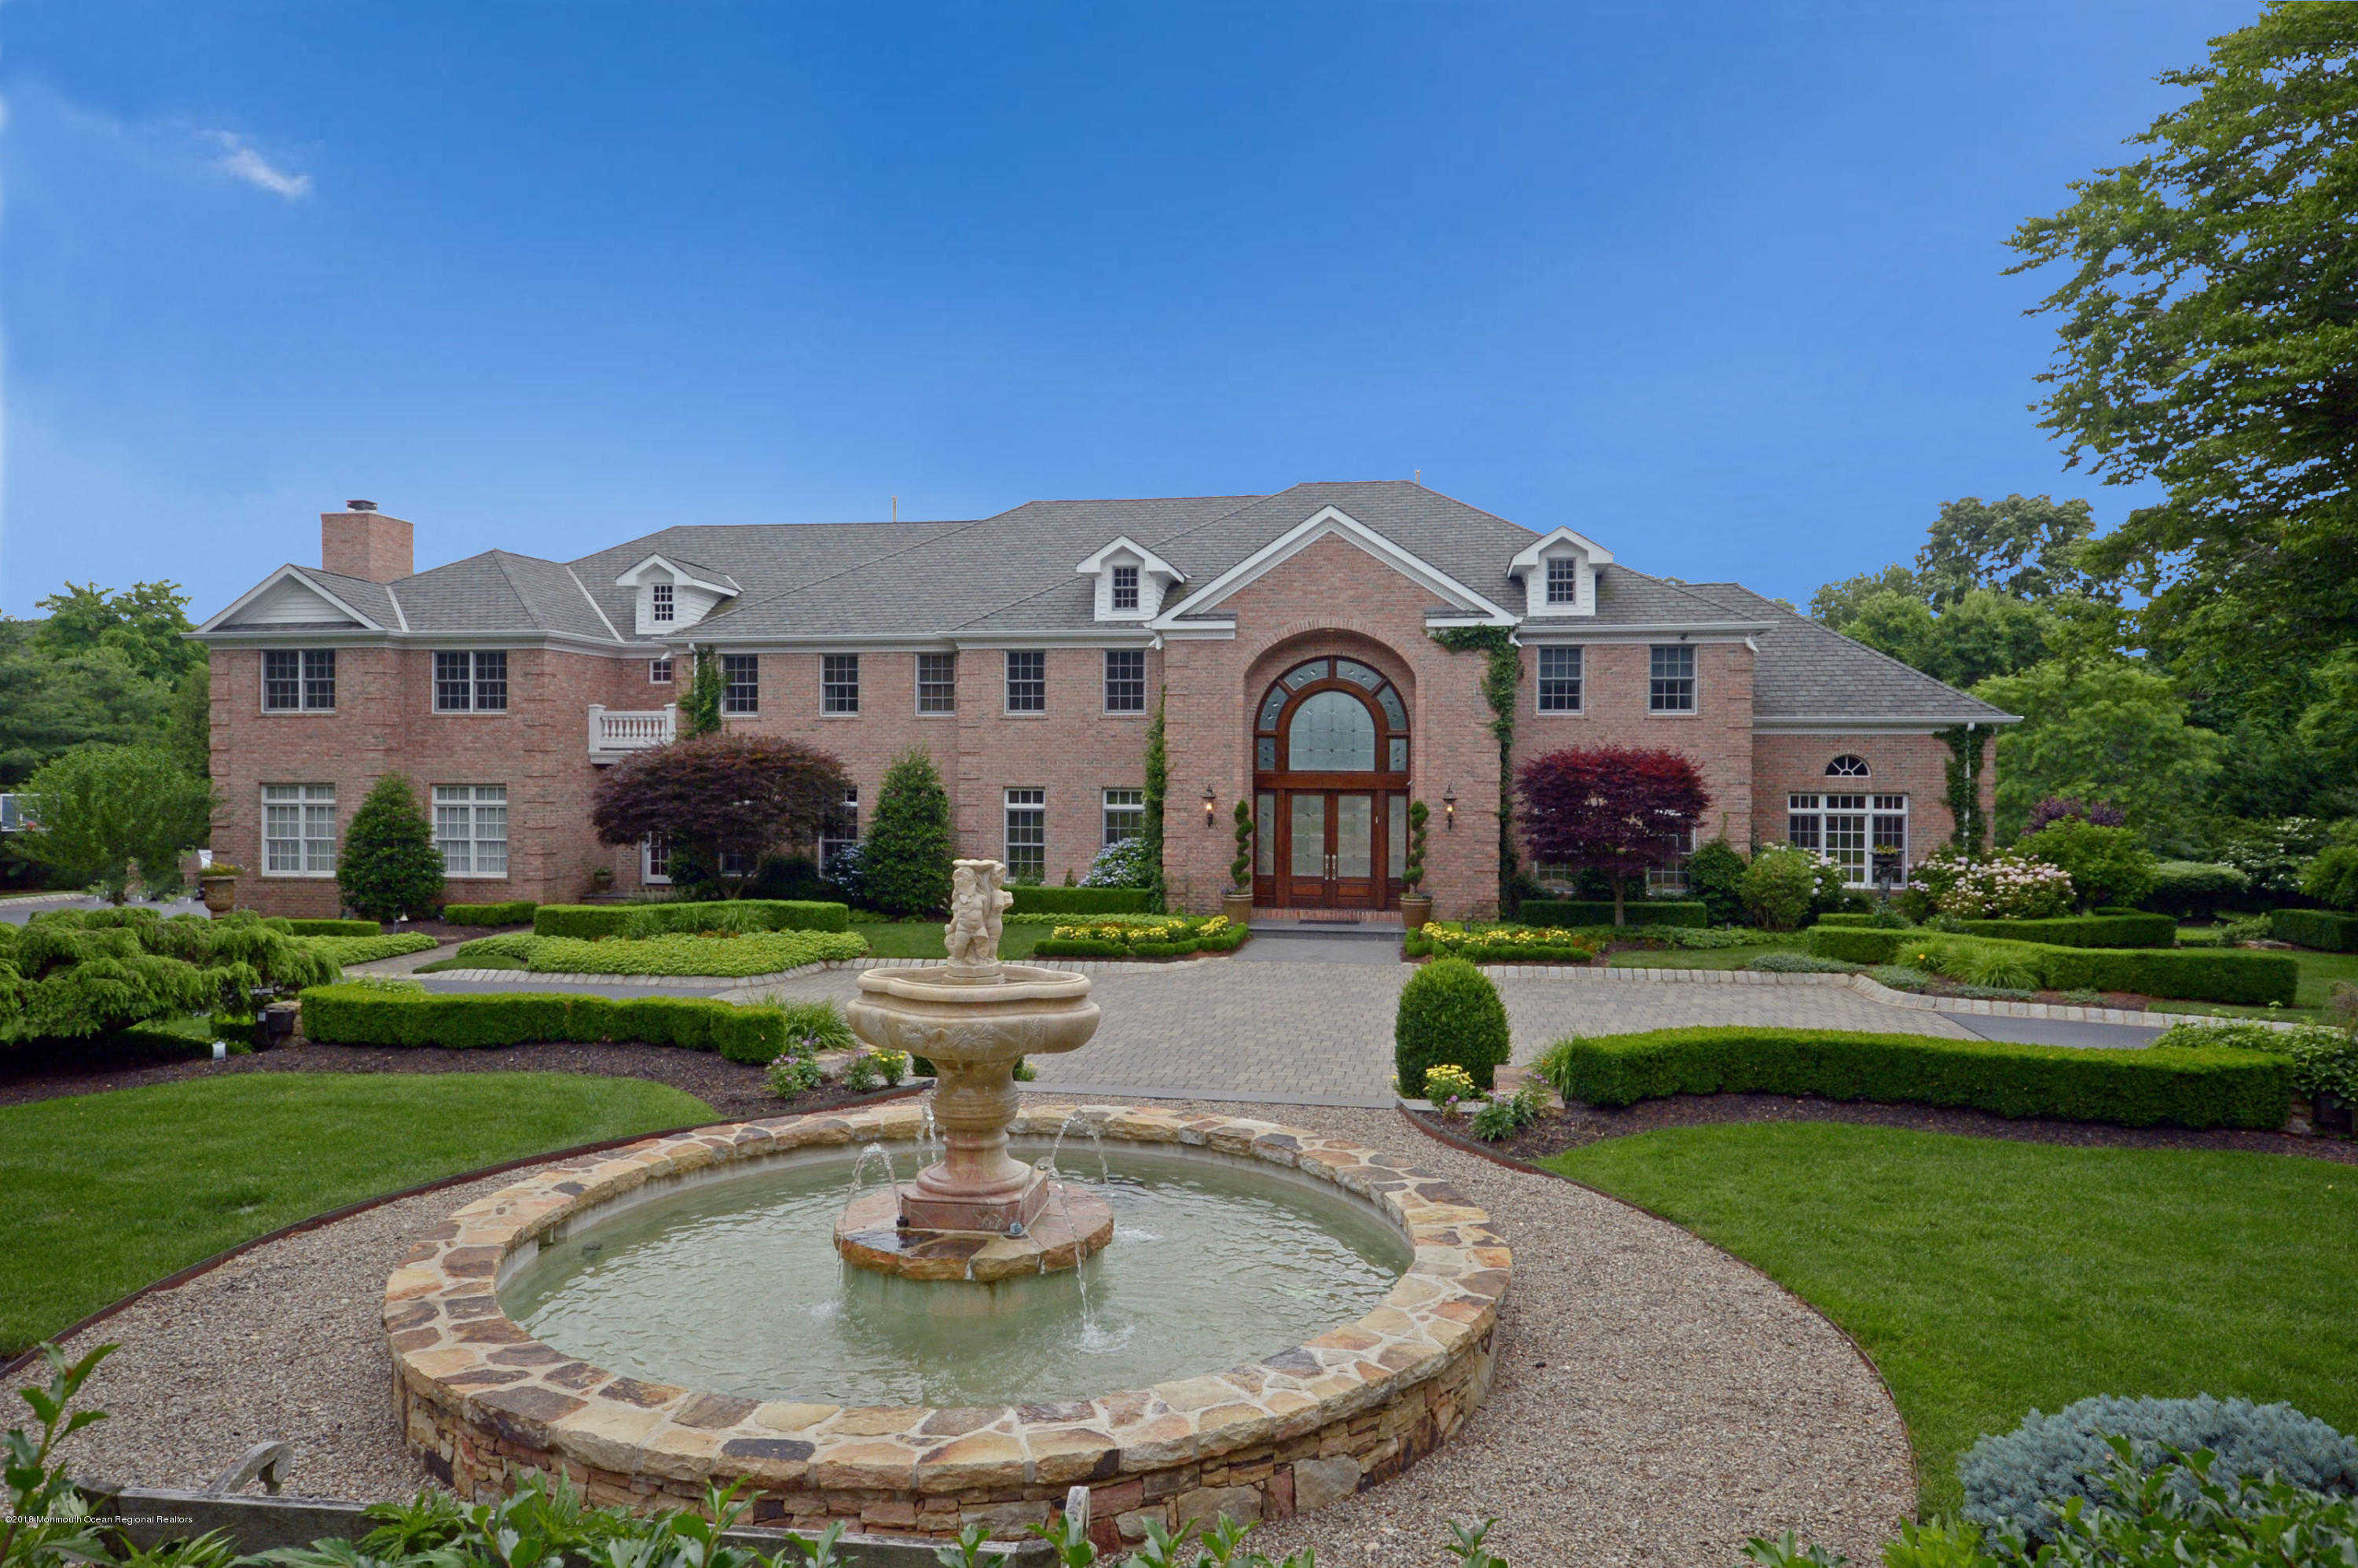 132 Heulitt Road, Colts Neck, NJ 07722 now has a new price of $2,499,000!